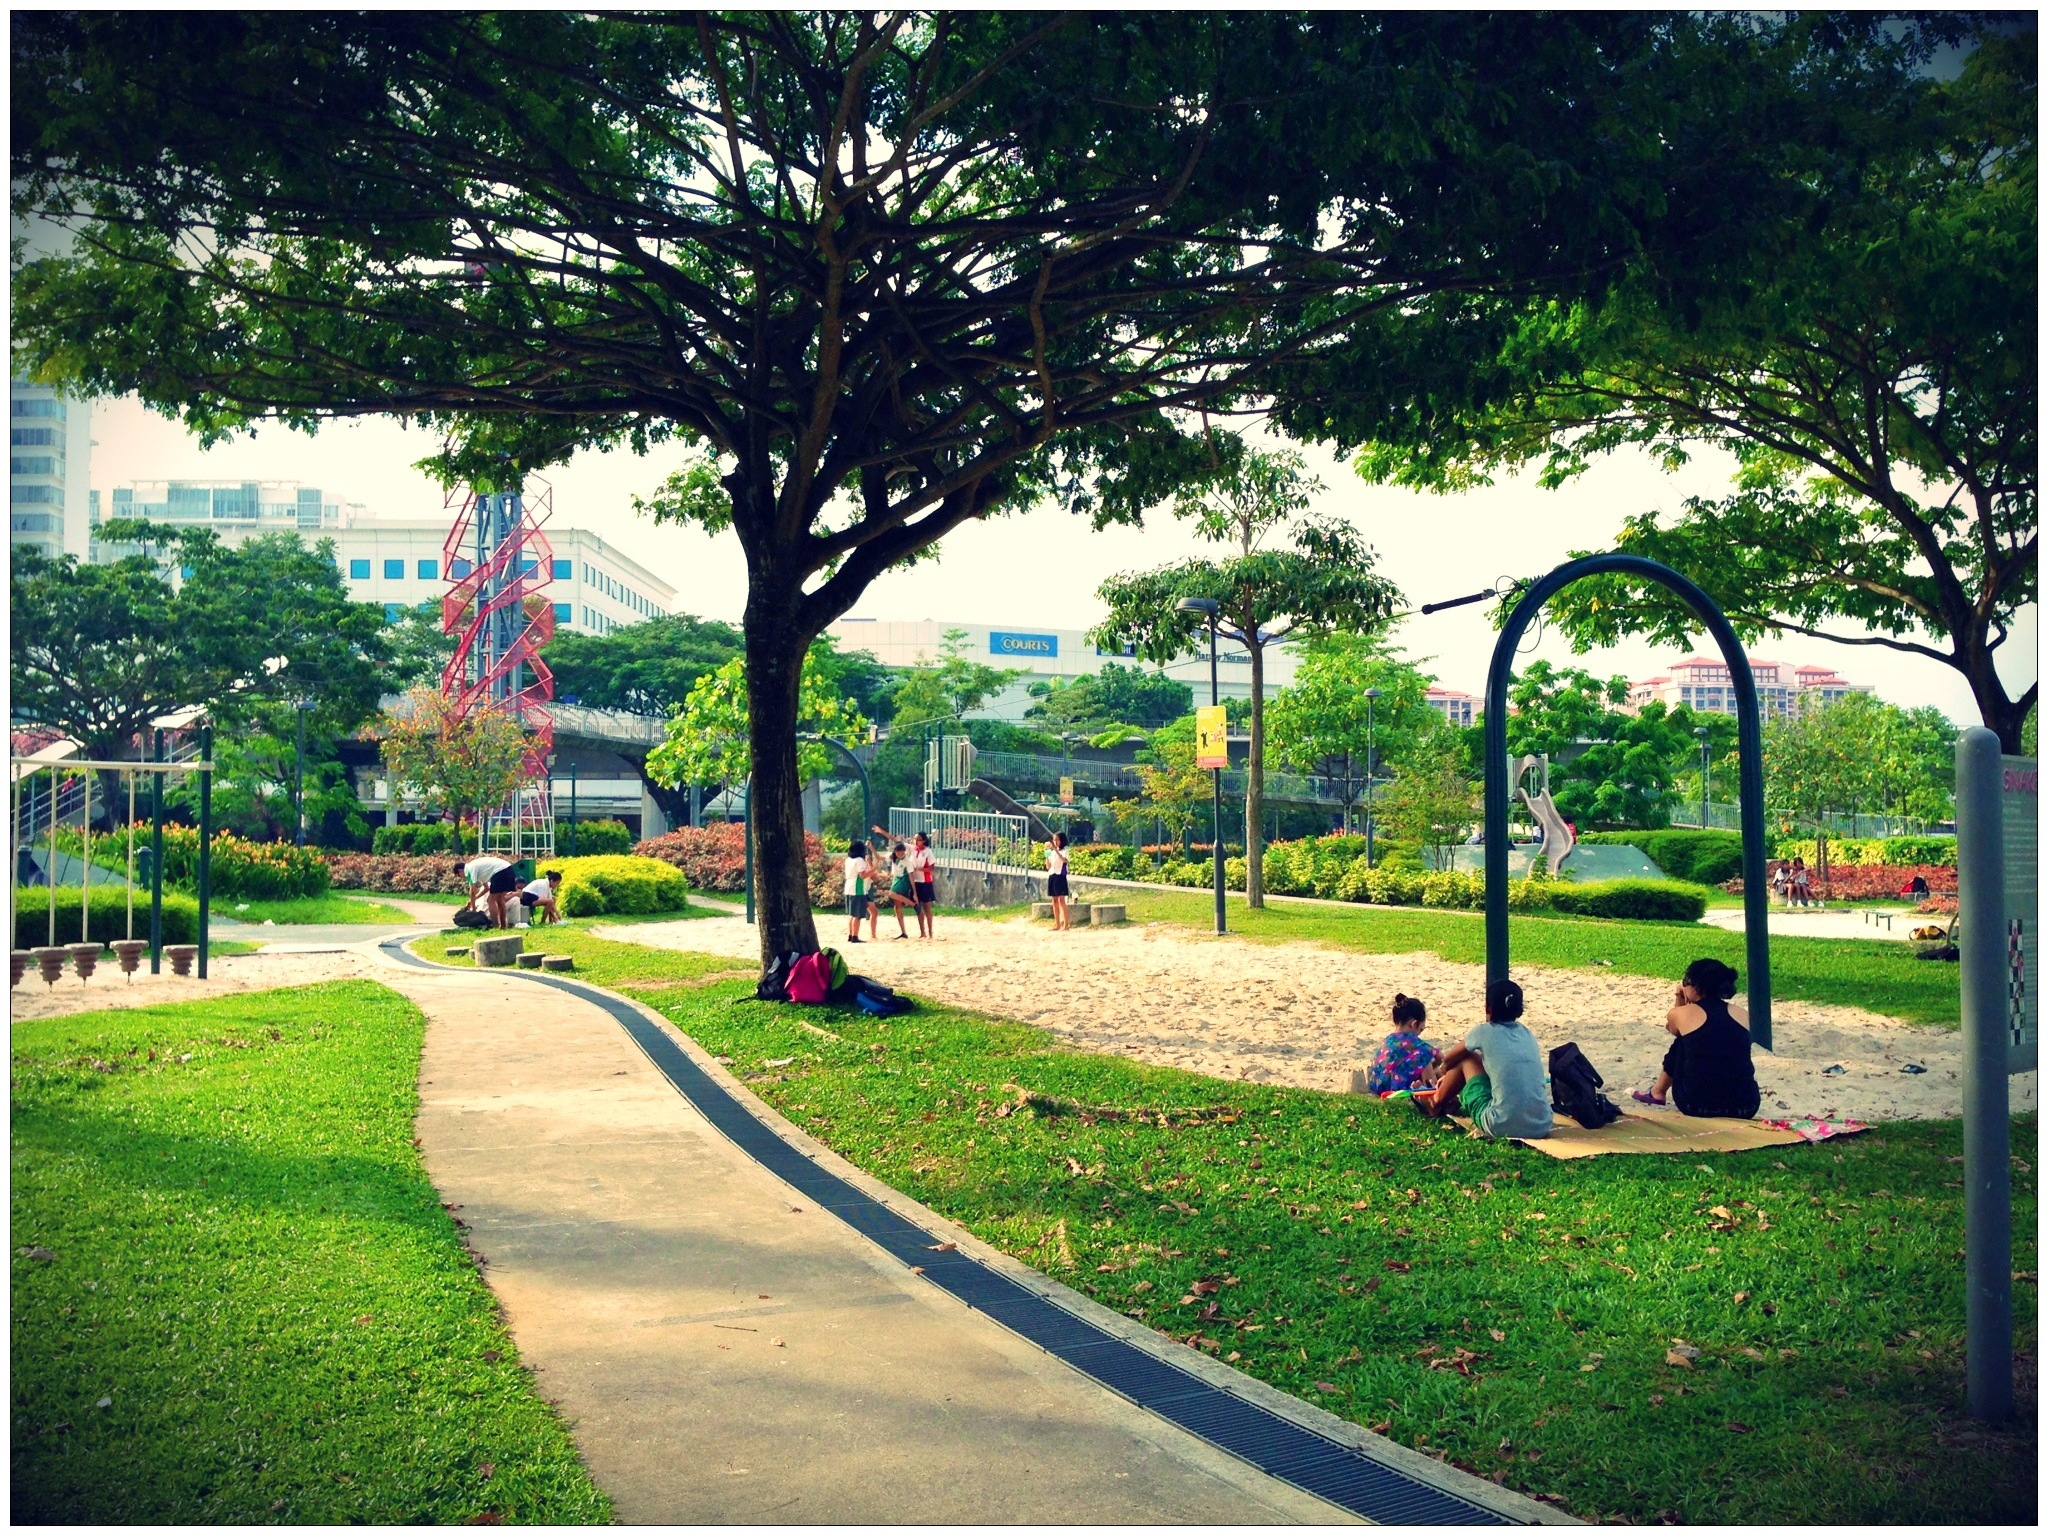 jurong central park outdoor playground singapore